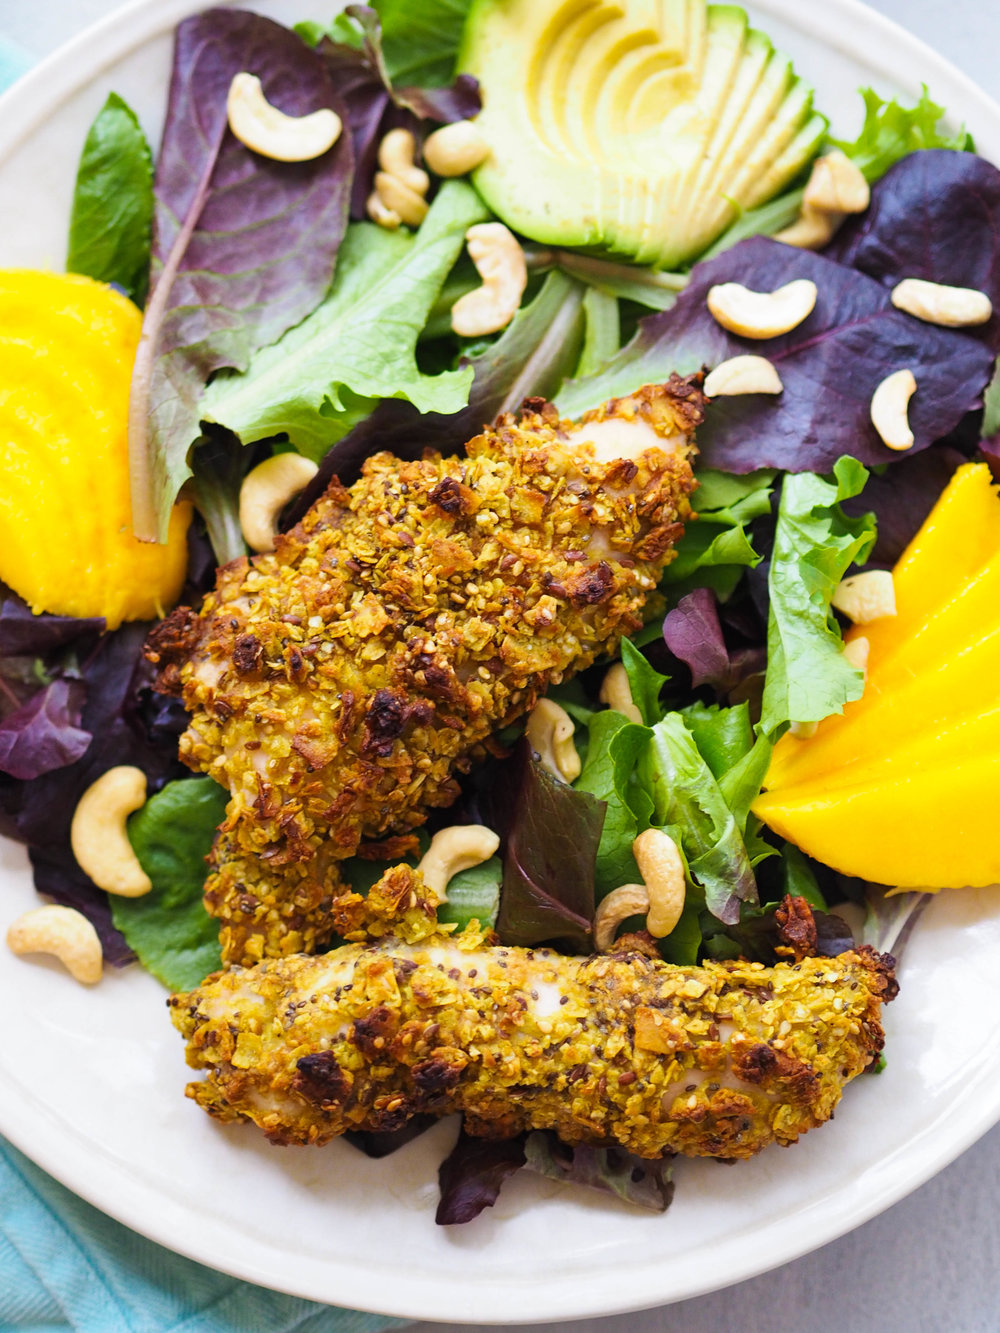 The perfect chicken salad for summer, packed with tons of fresh flavor! Make this coconut curry crusted chicken salad with mango and a homemade honey mustard dressing! #salad #summer #chicken #healthyrecipe